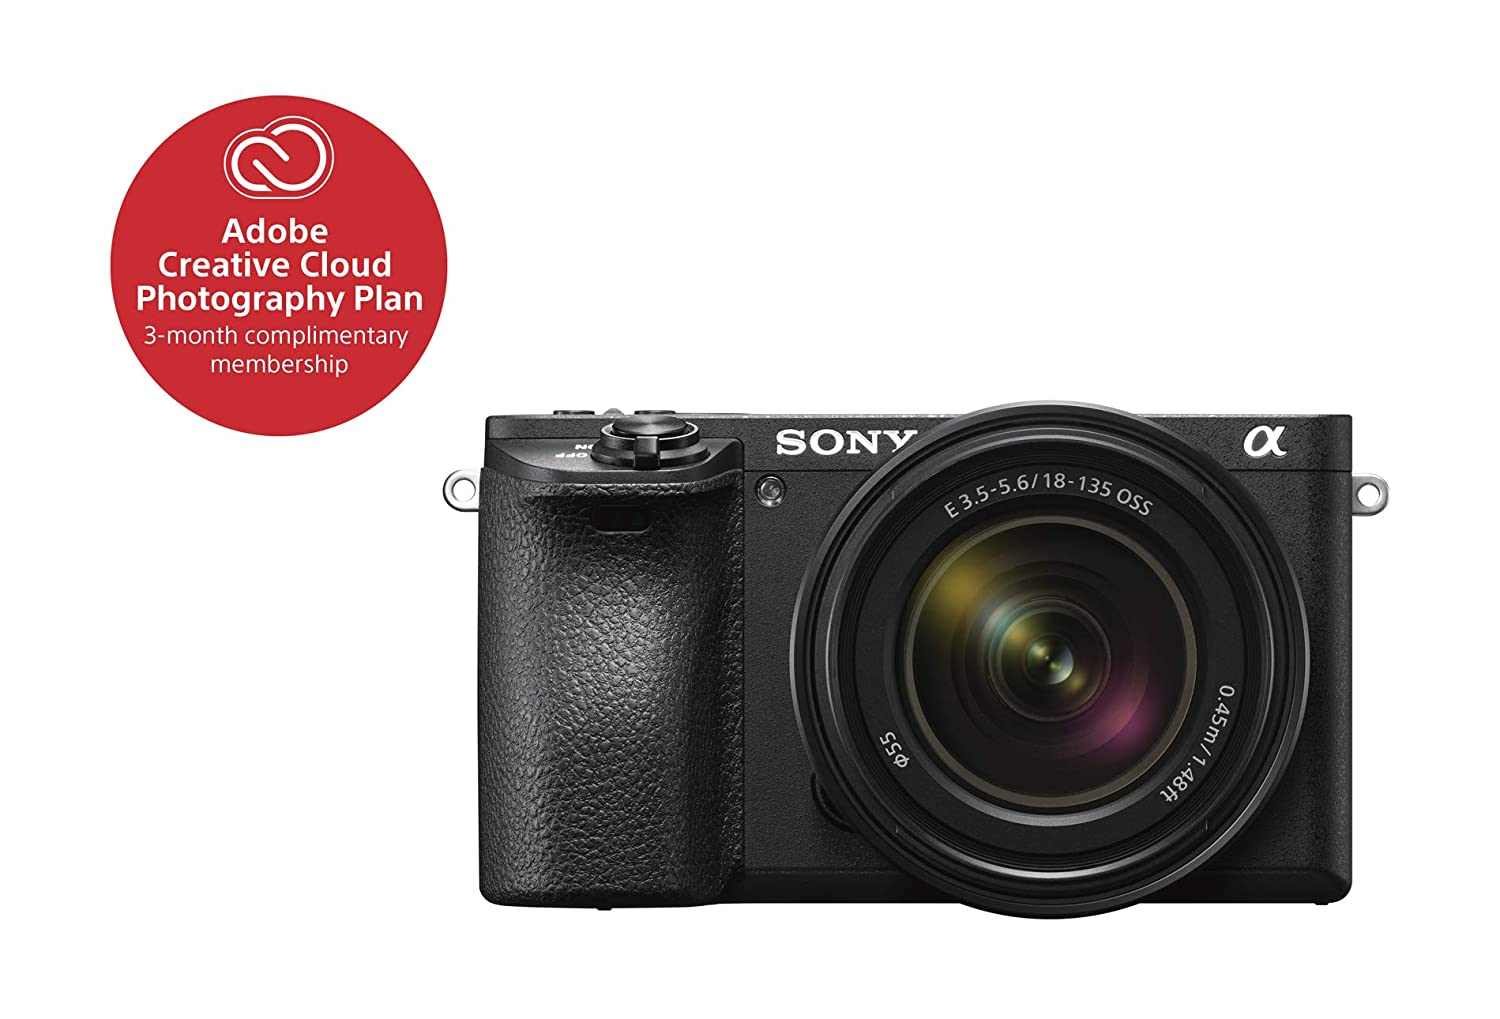 Sony ILCE6500M/B A6500 Mirrorless Camera with 18-135mm Lens SLR, Black Sony Electronics Inc.